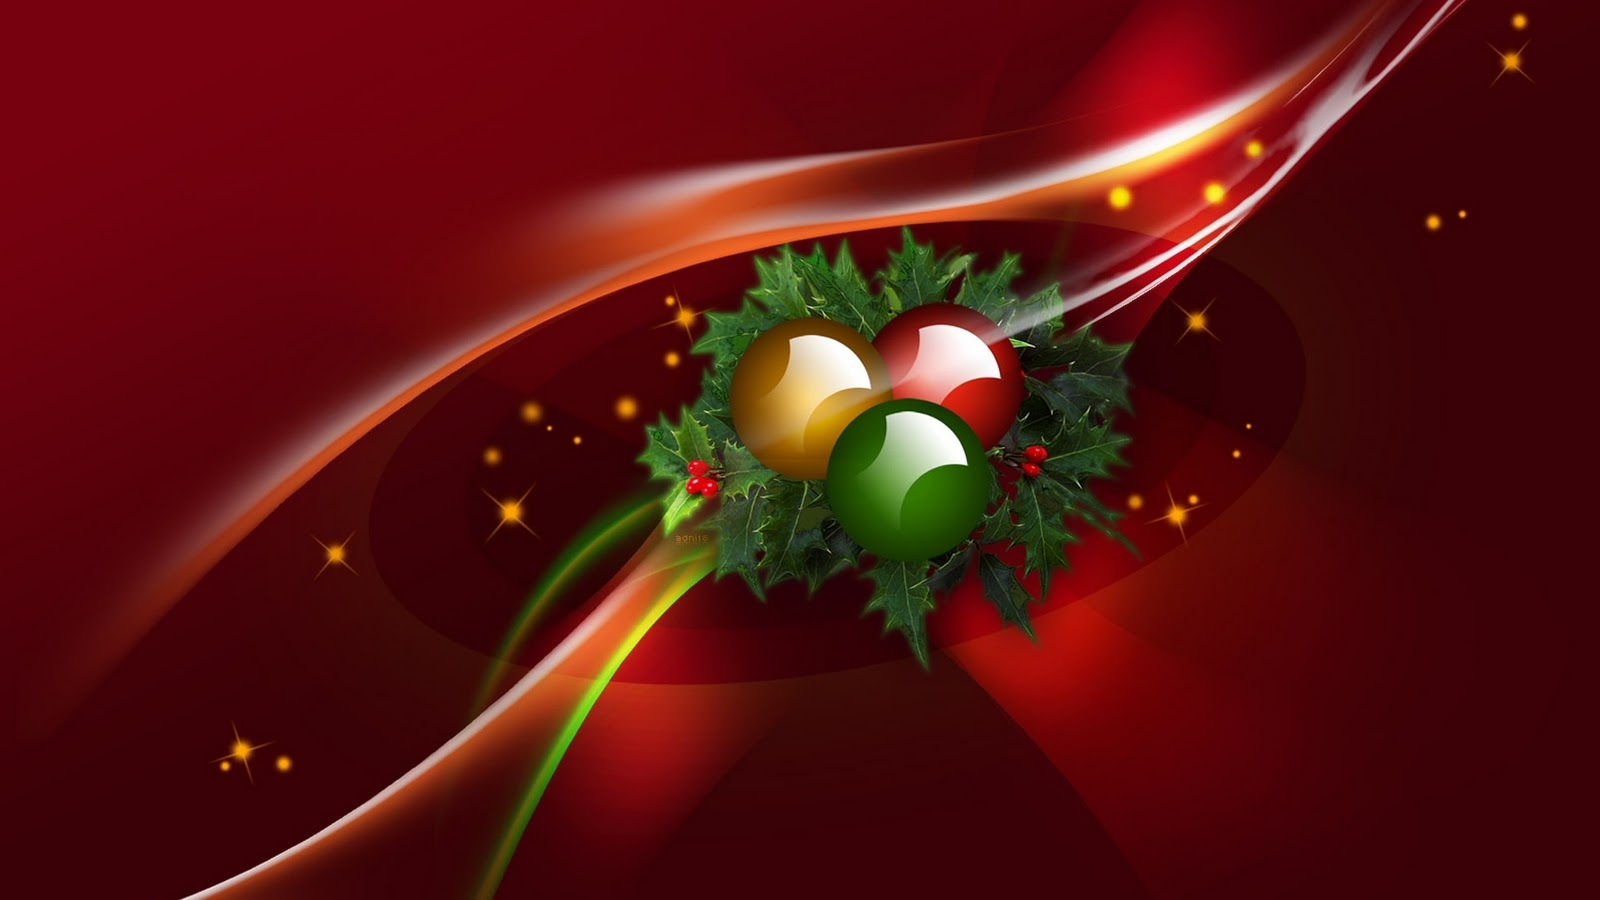 Merry Christmas Desktop Wallpapers Merry Christmas Greeting 1600x900